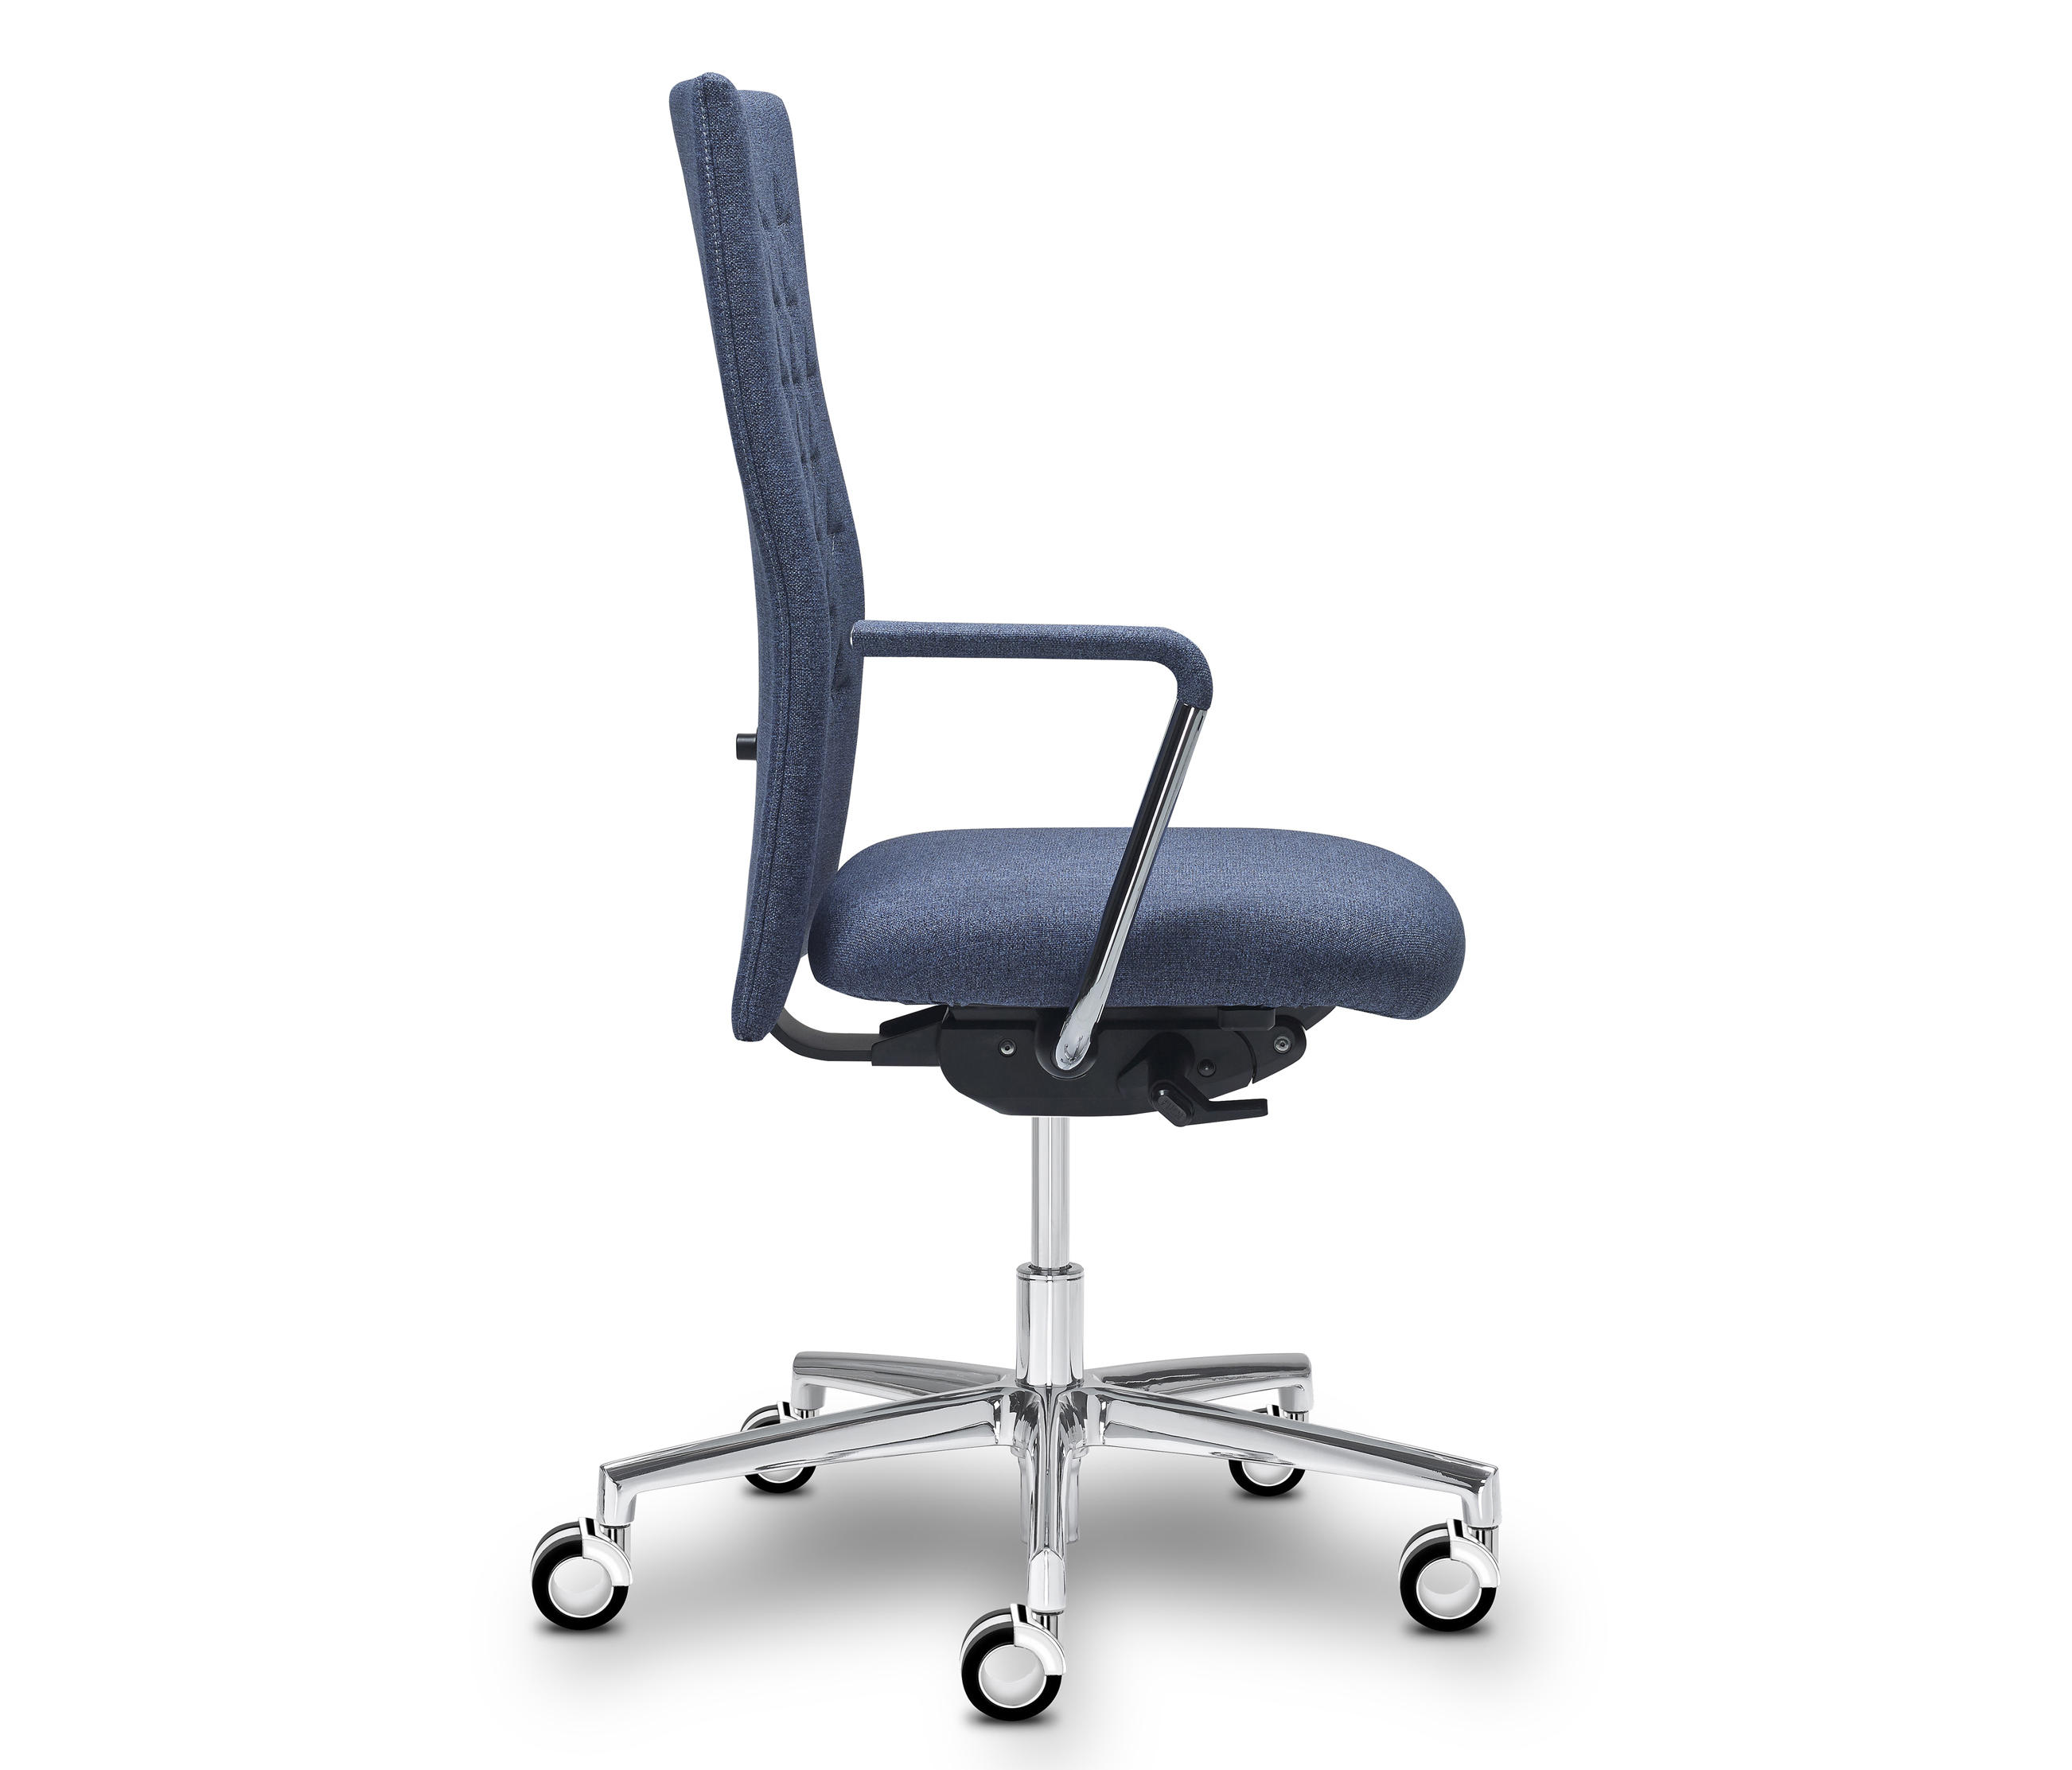 BUTTERFLY TASK CHAIR Task chairs from sitland